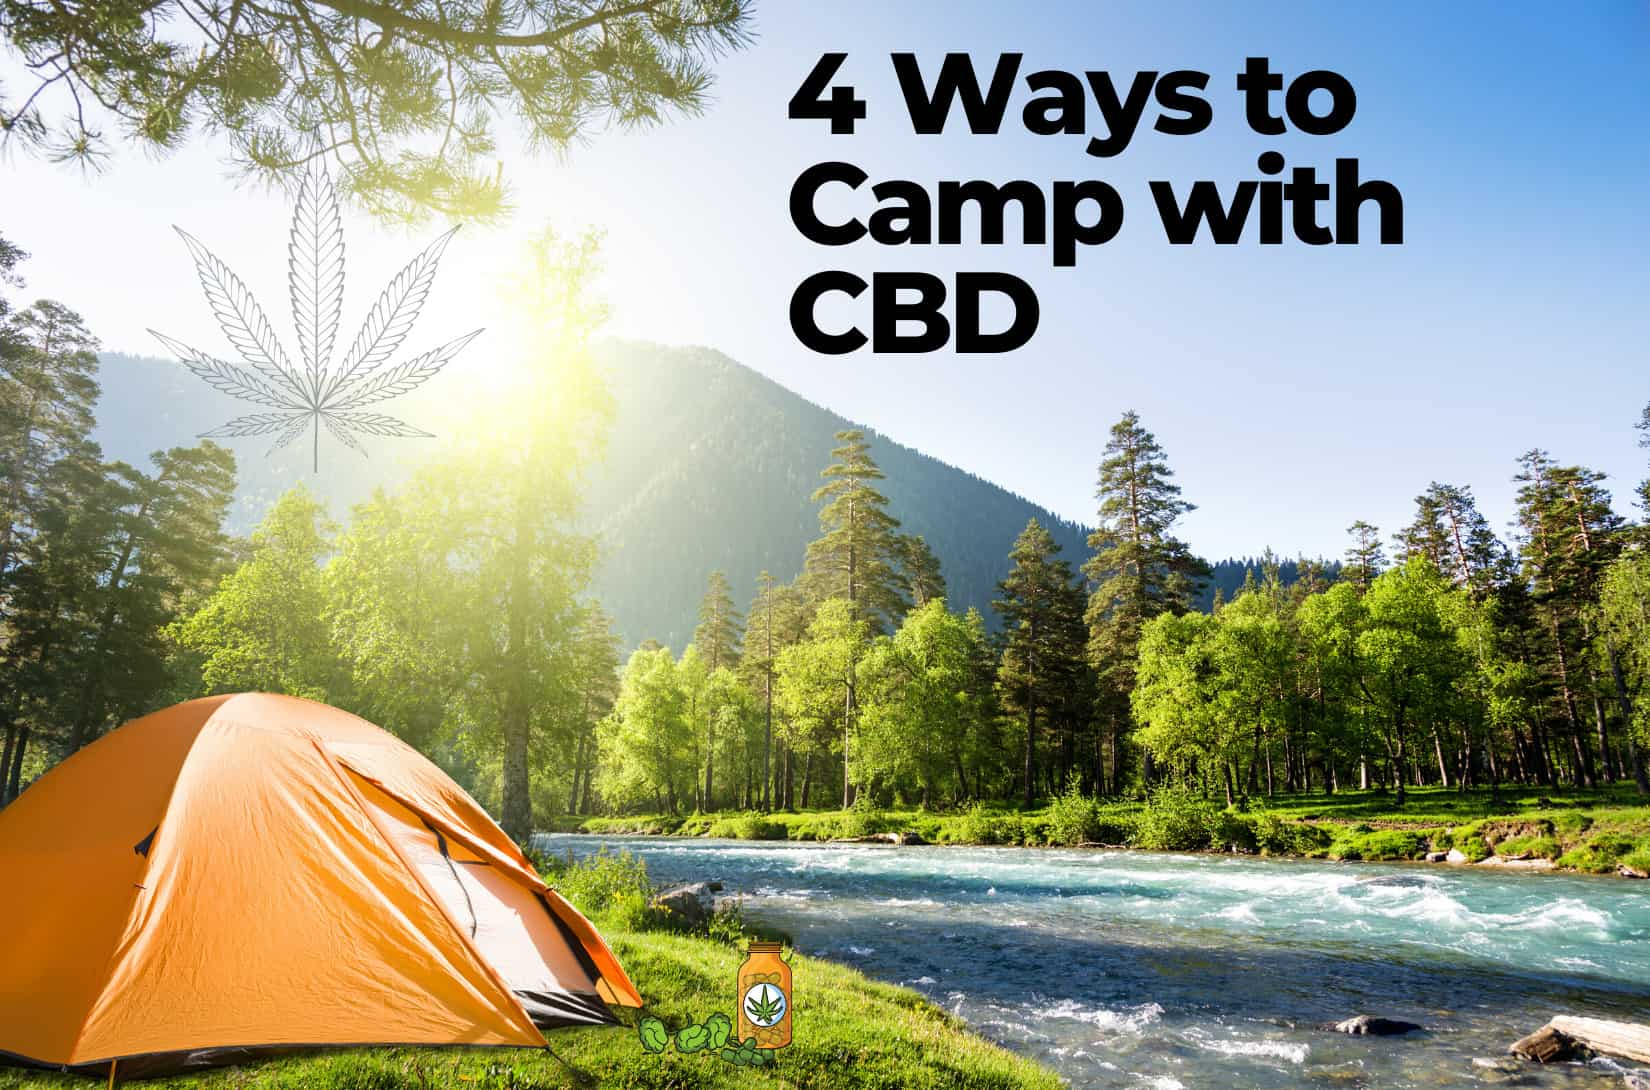 camping with CBD